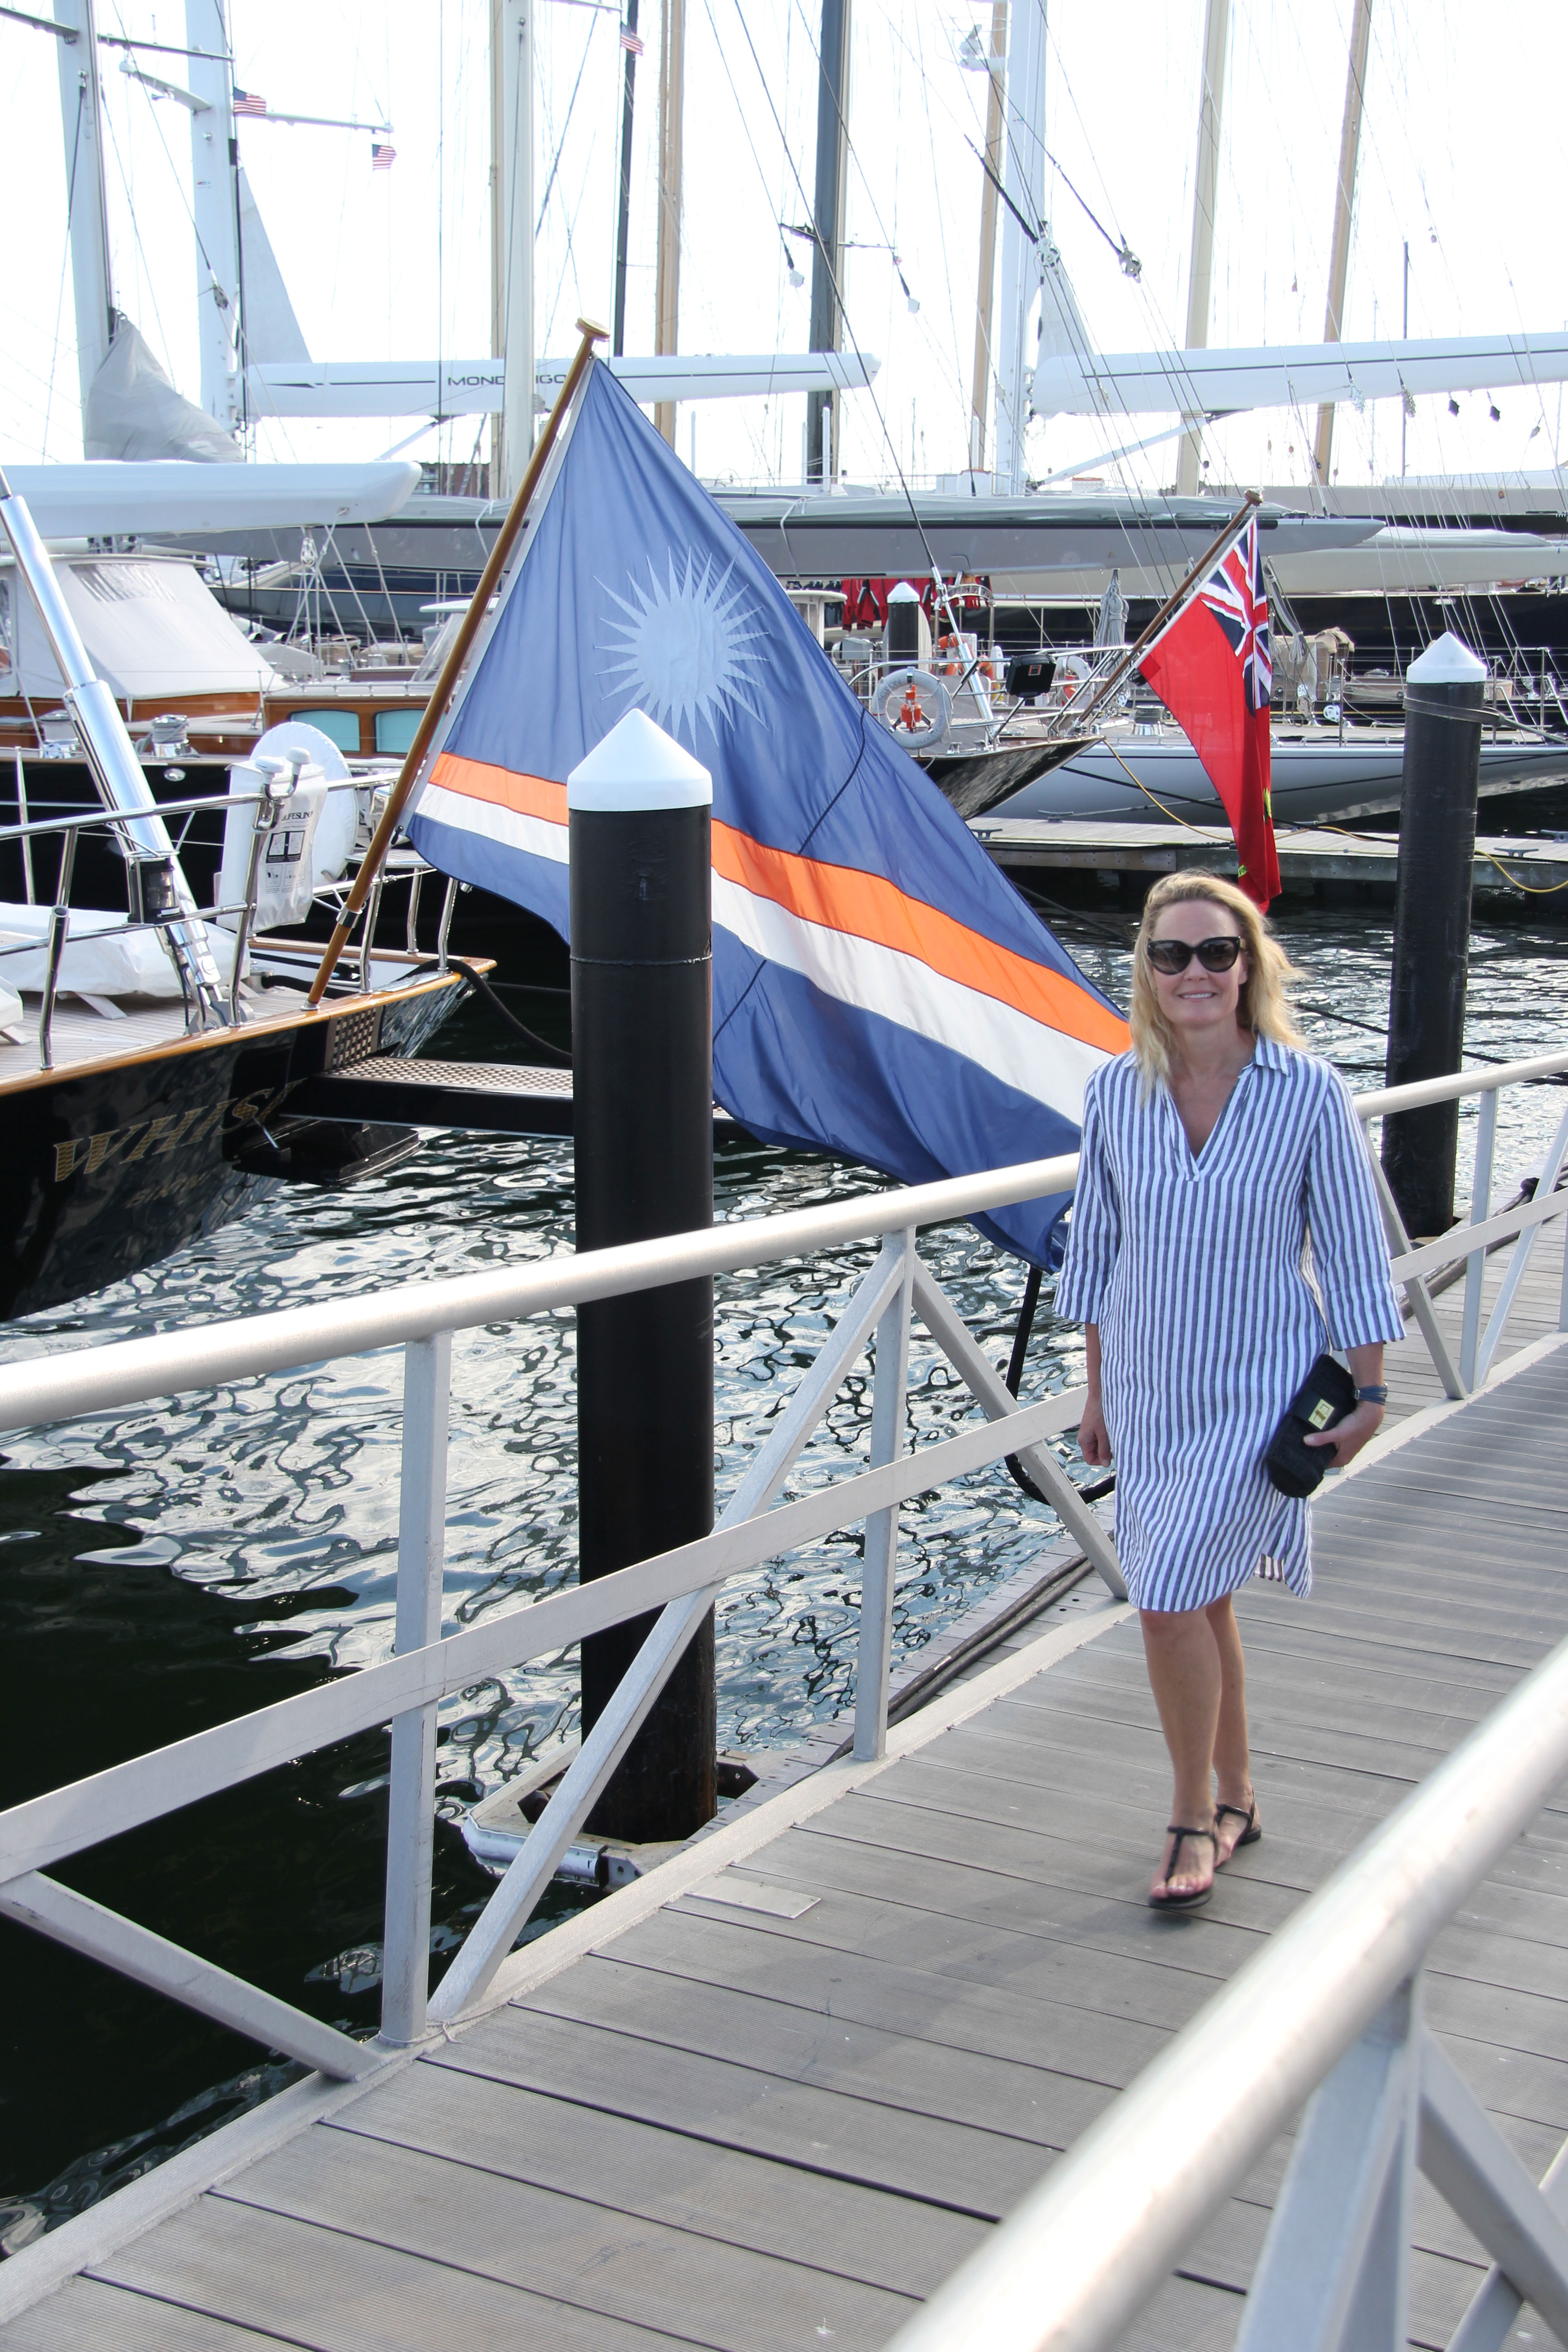 Ridgely Brode wears her Striped Nautique Dress for a stroll along the boats in Newport, Rhode Island on her blog, Ridgely's Radar.